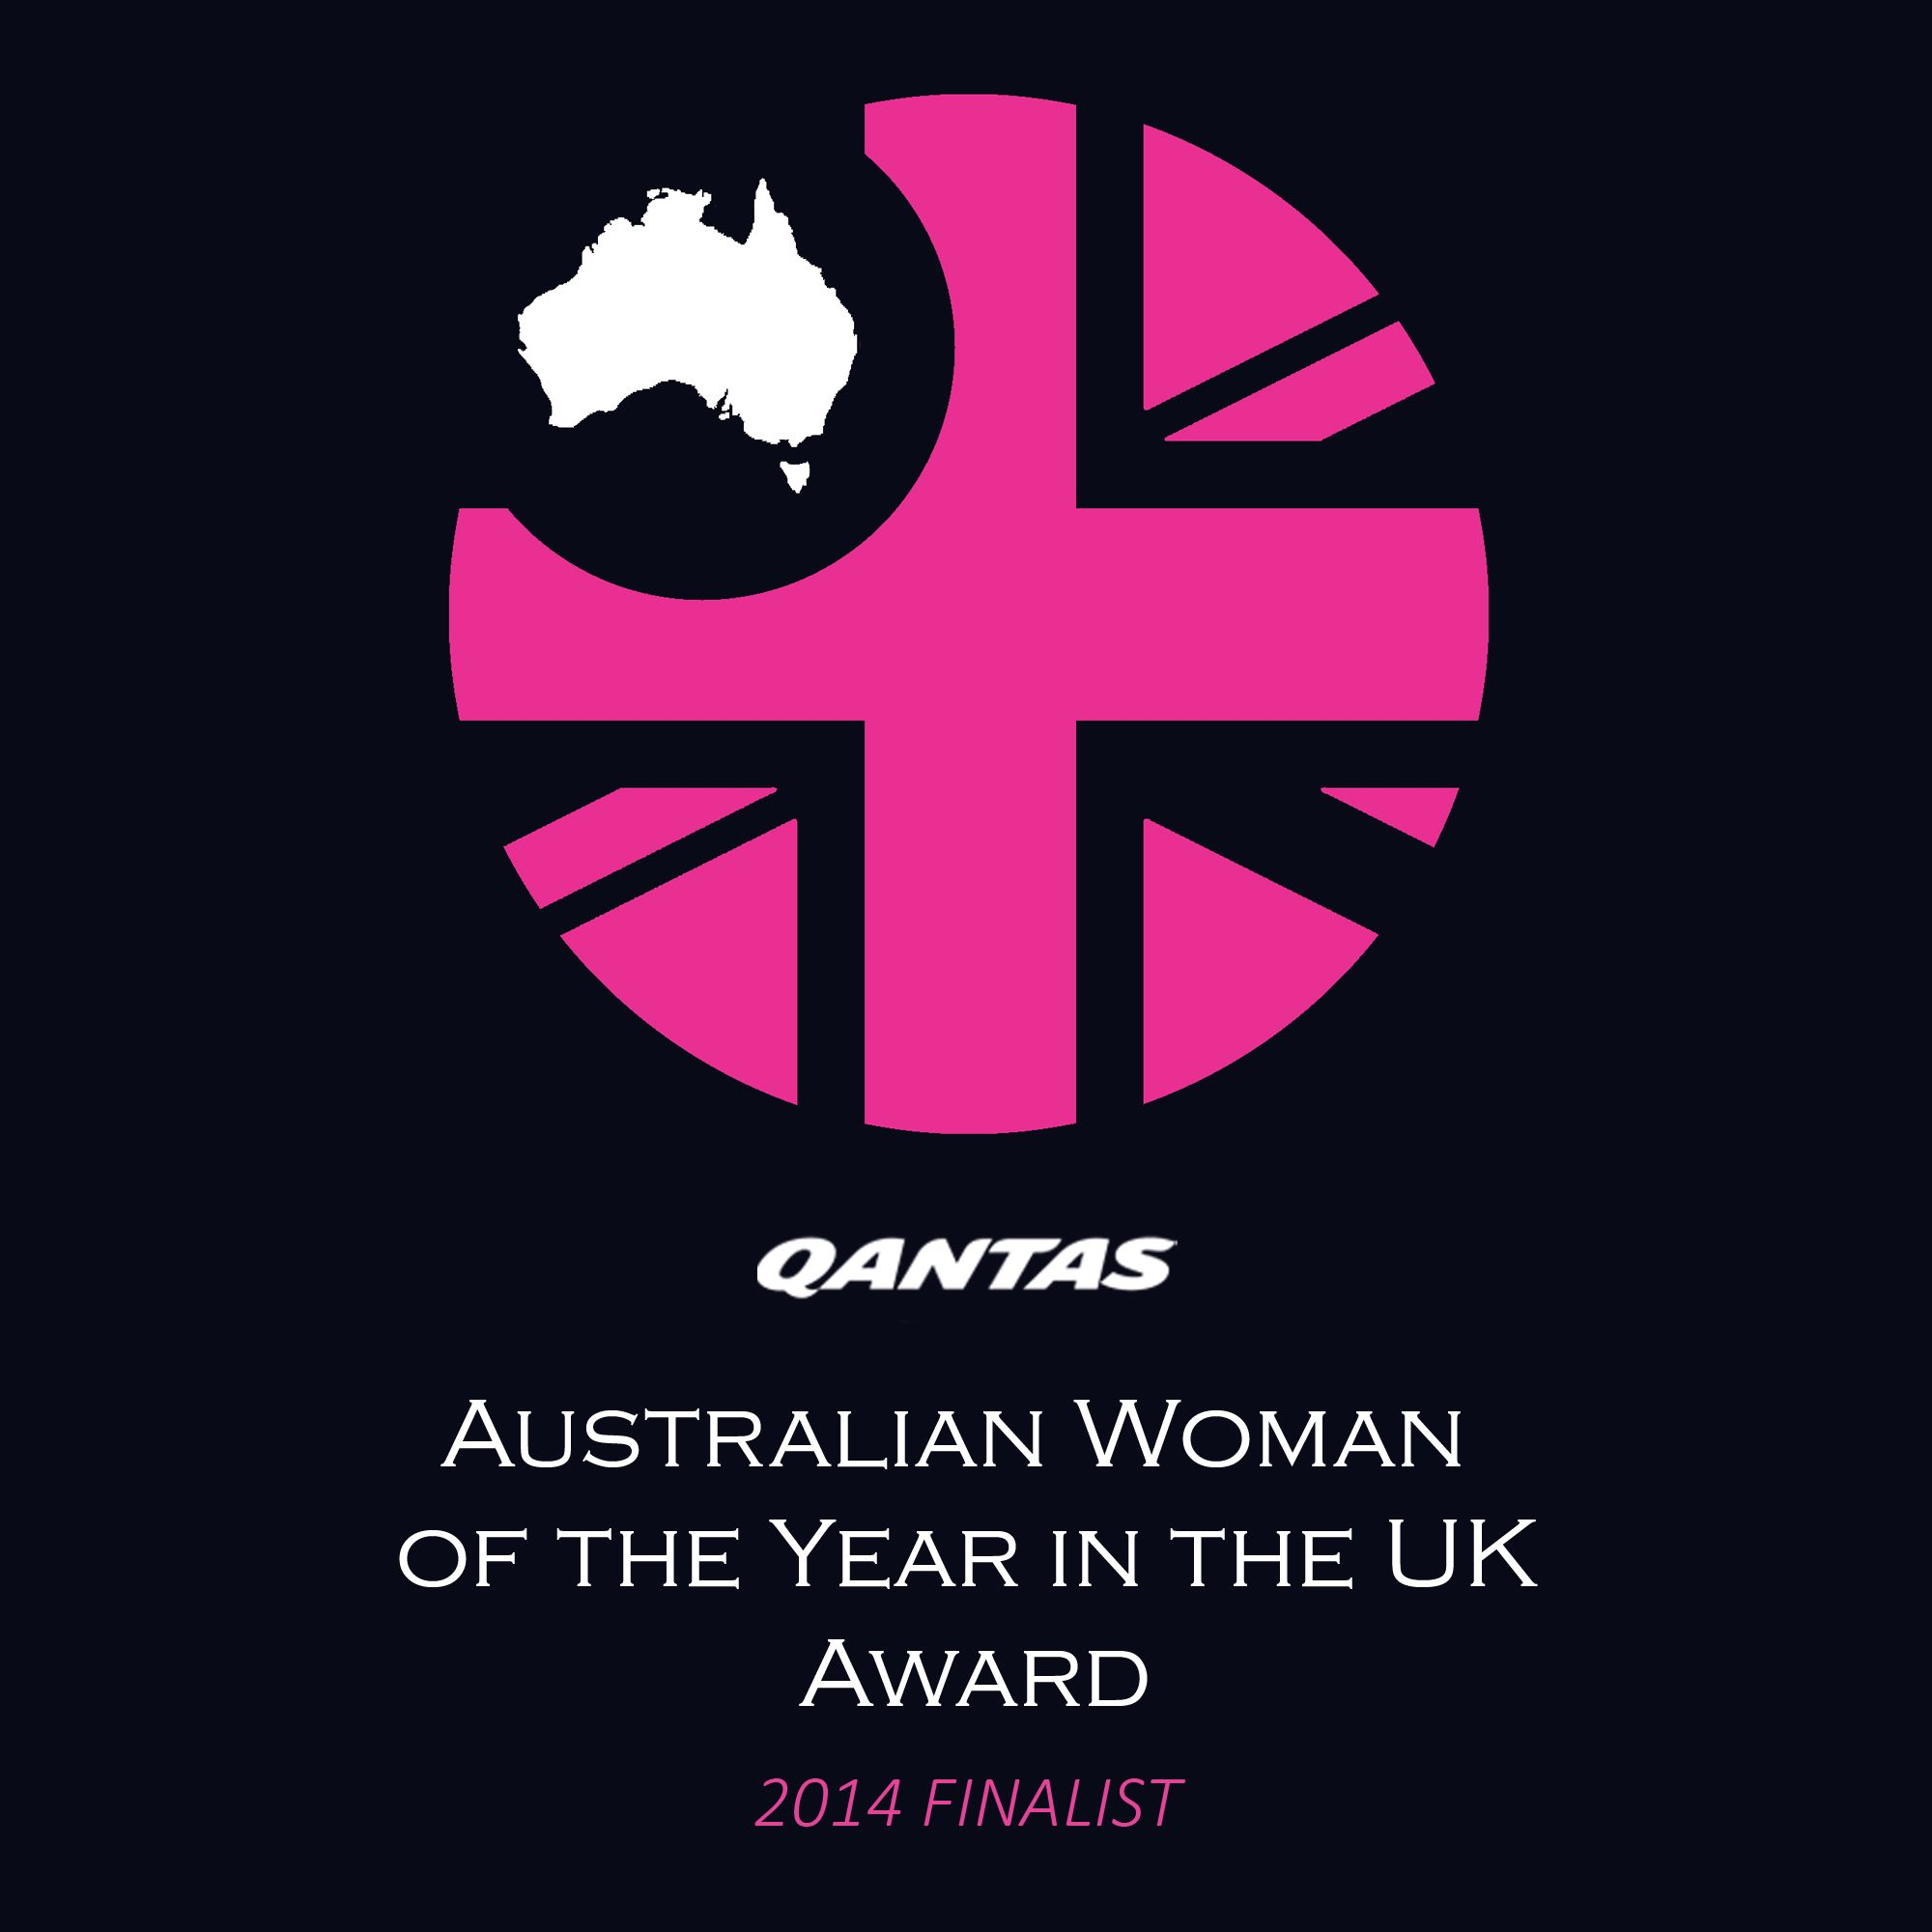 Qantas Australian Woman of the Year in the UK 2014